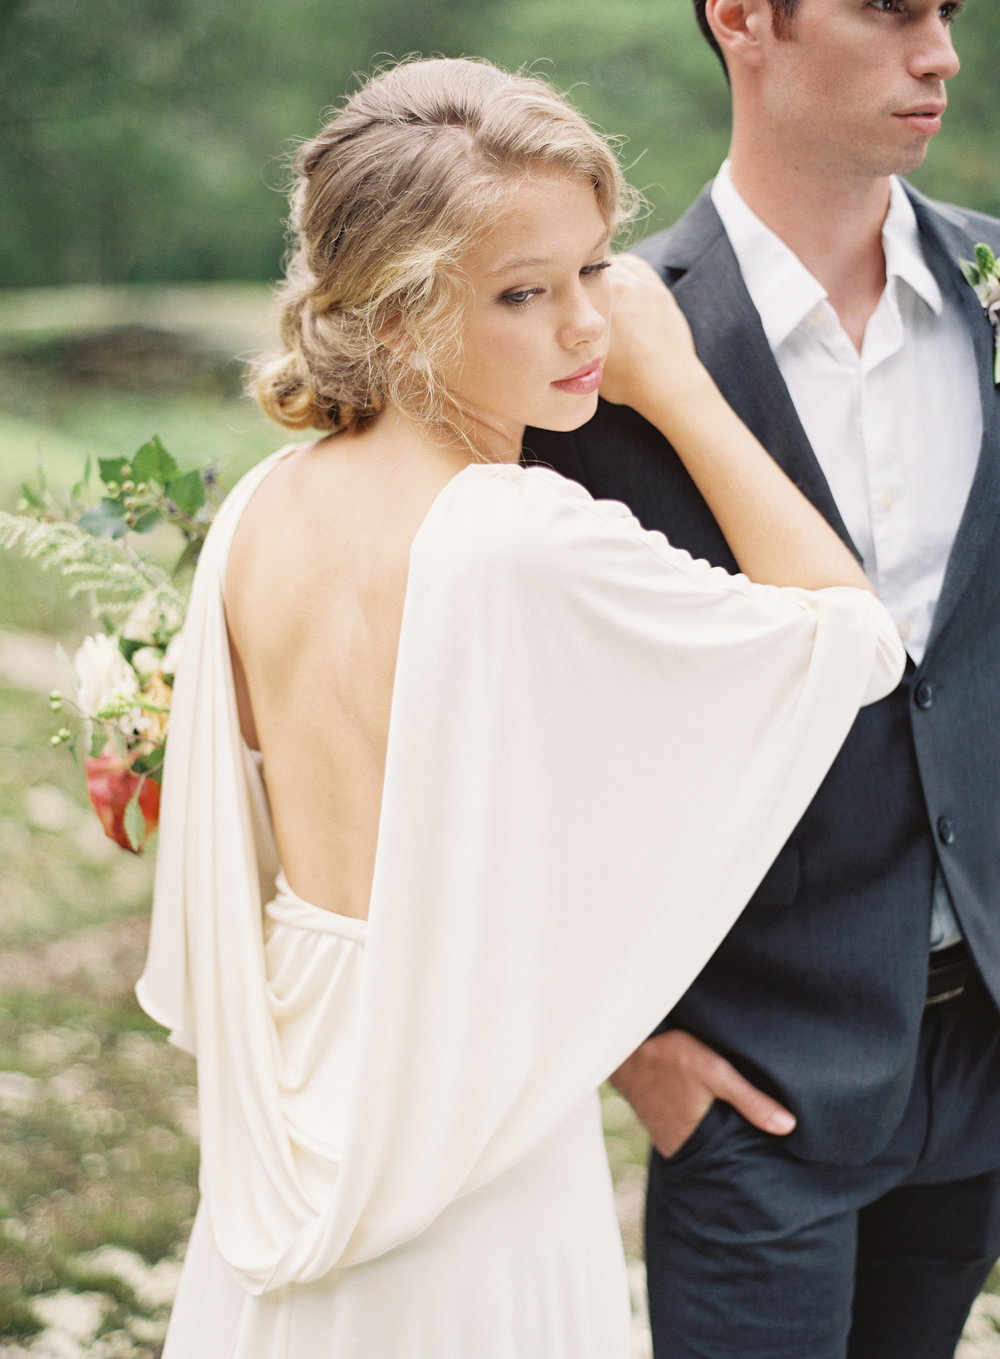 Autumn Wedding Inspiration at the Mill at Fine Creek by Richmond Virginia Wedding Planner East Made Event Company and Michael and Carina Photography56.jpg